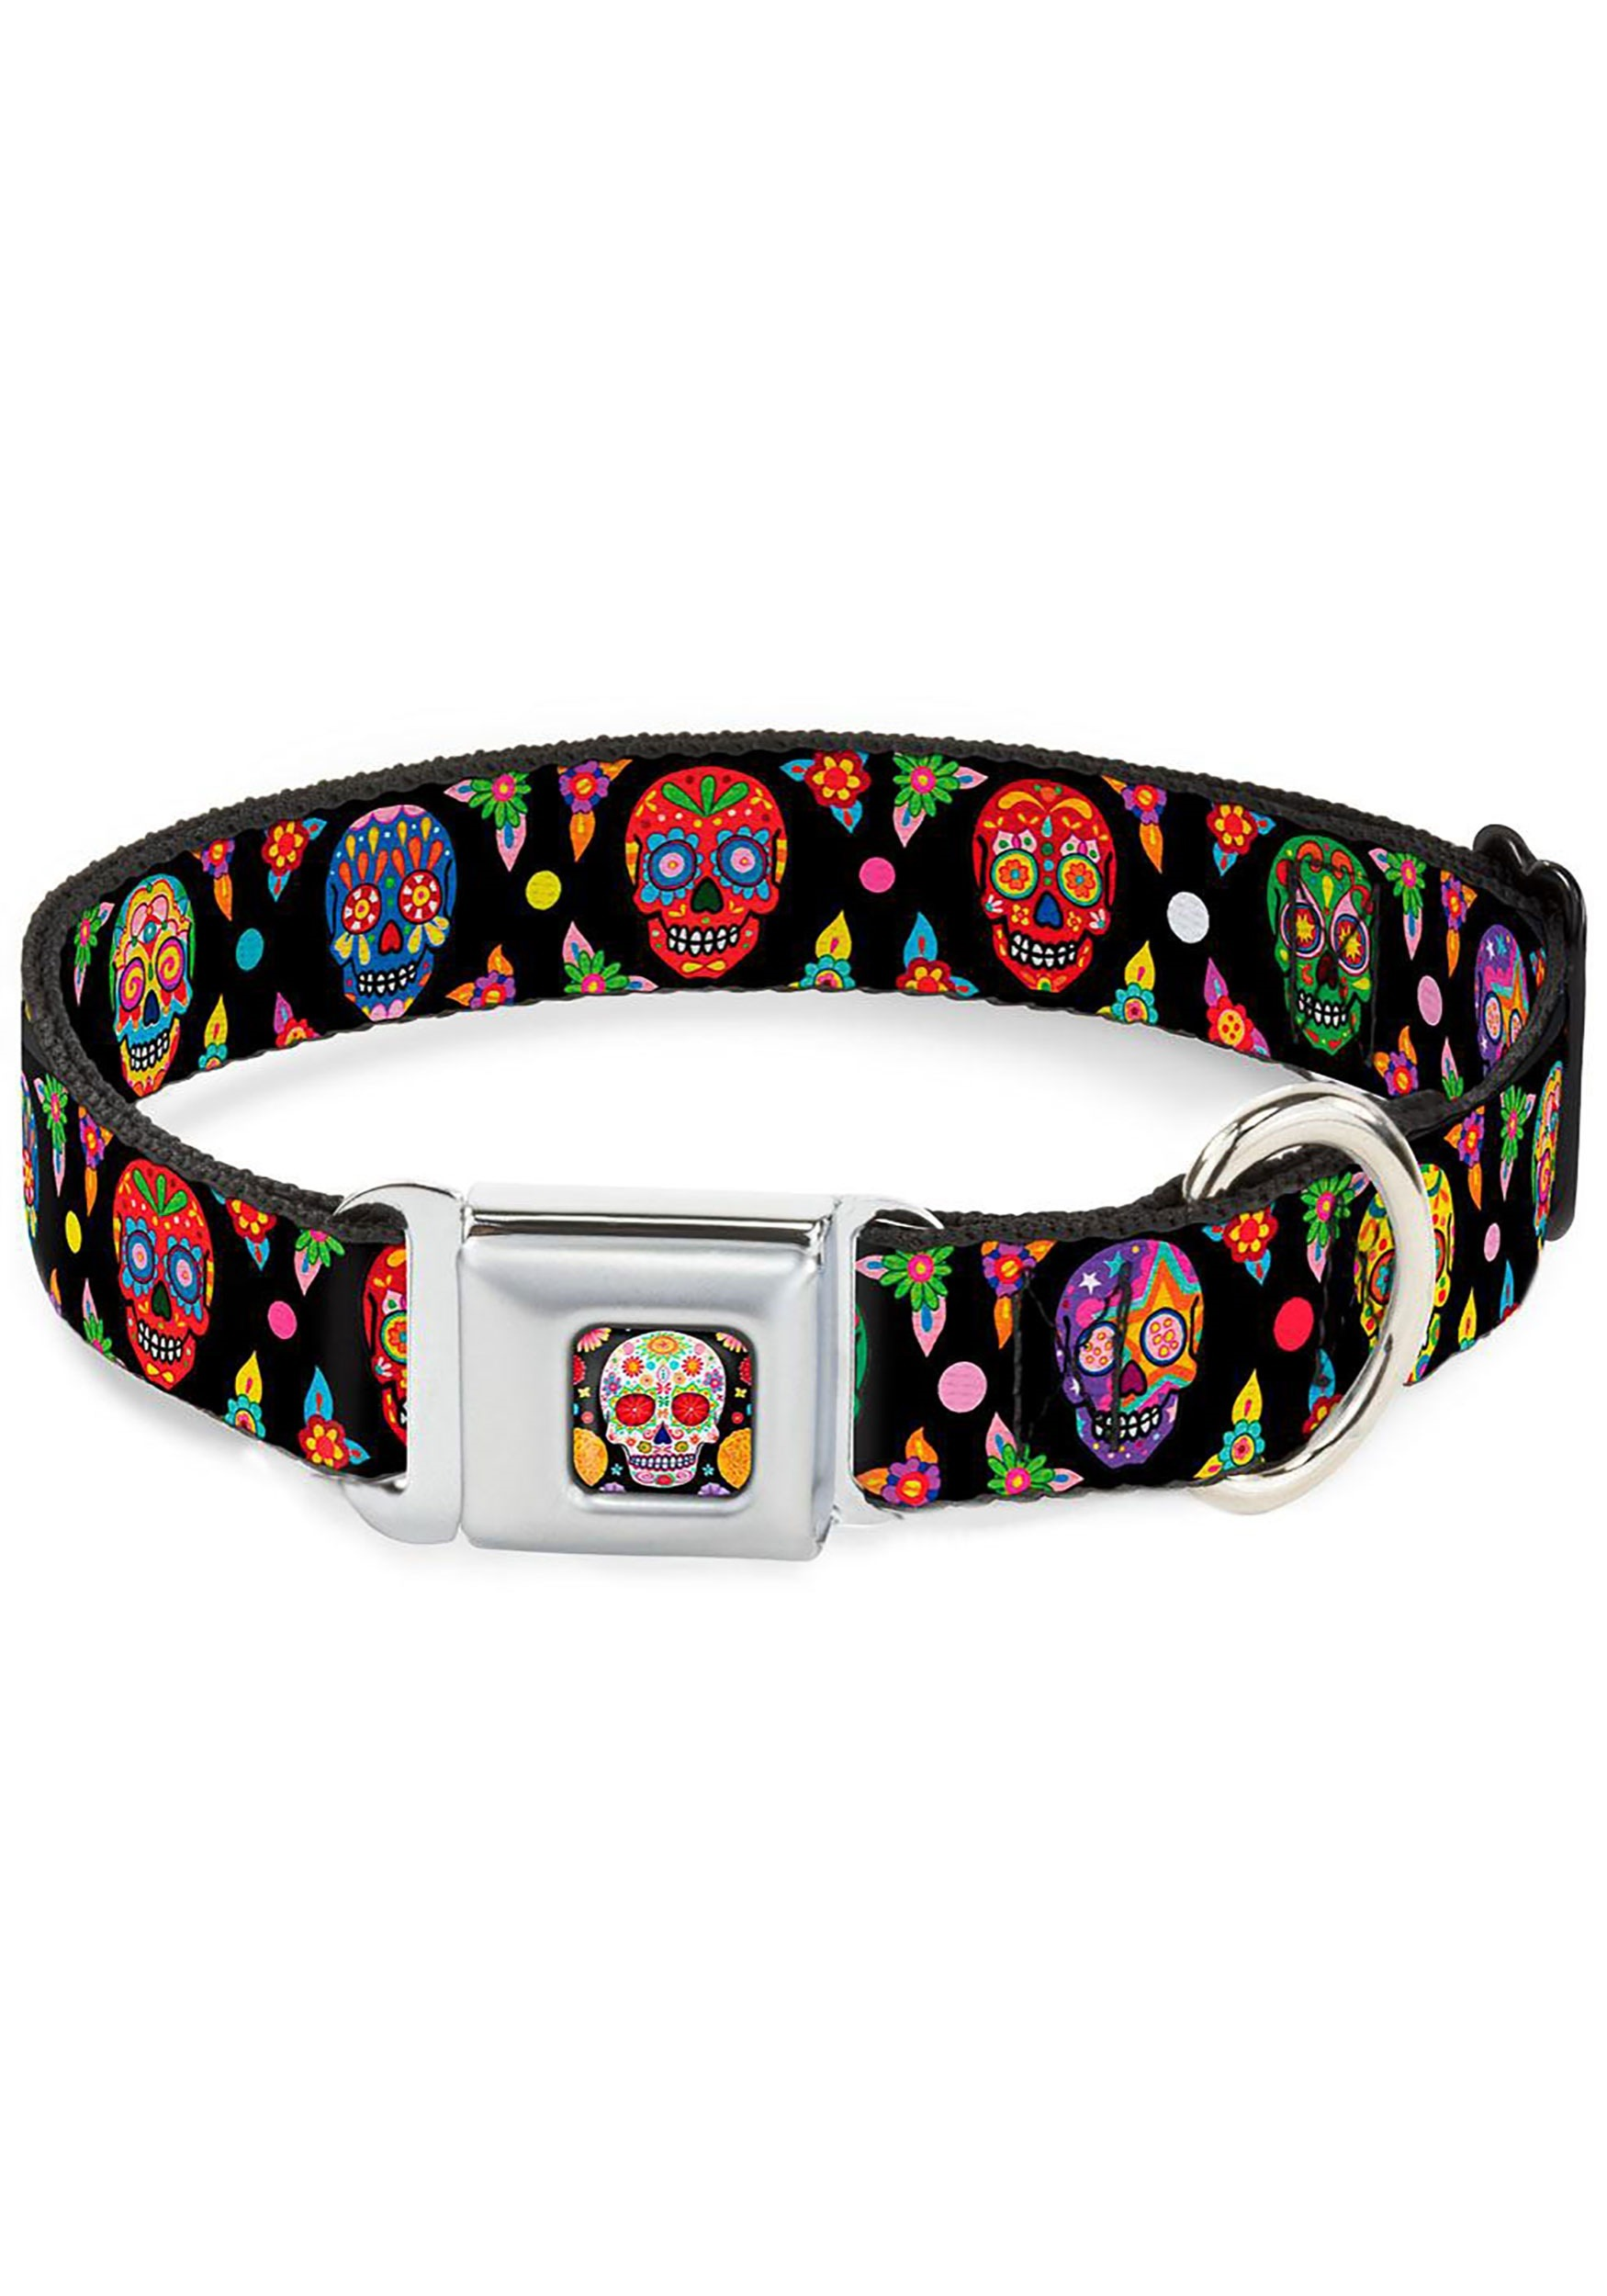 Multi-Color Sugar Skull Seatbelt Buckle Dog Collar- 1